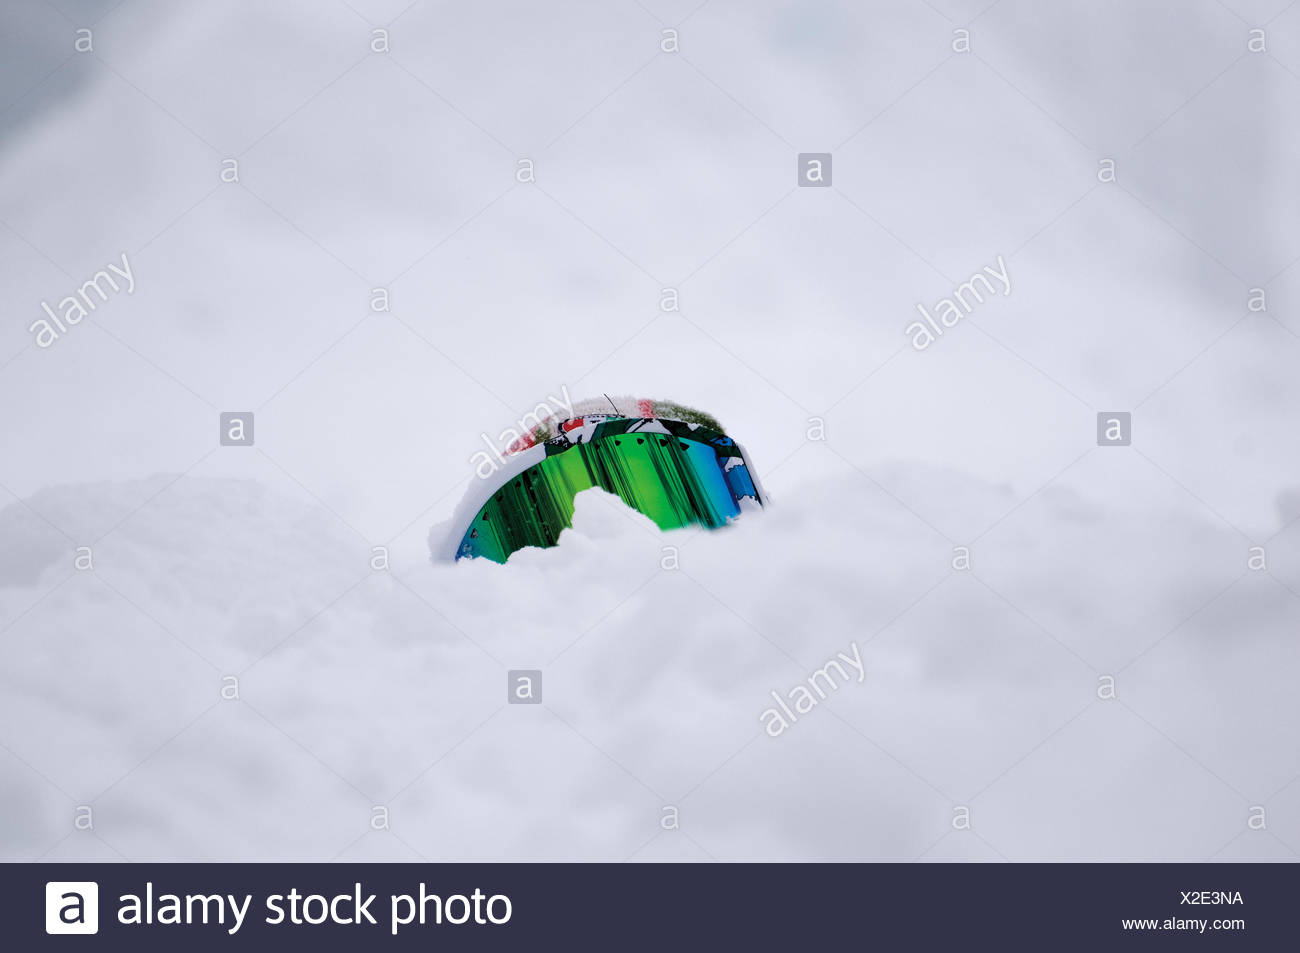 Close-Up Of Ski Goggles On Snow Covered Field - Stock Image